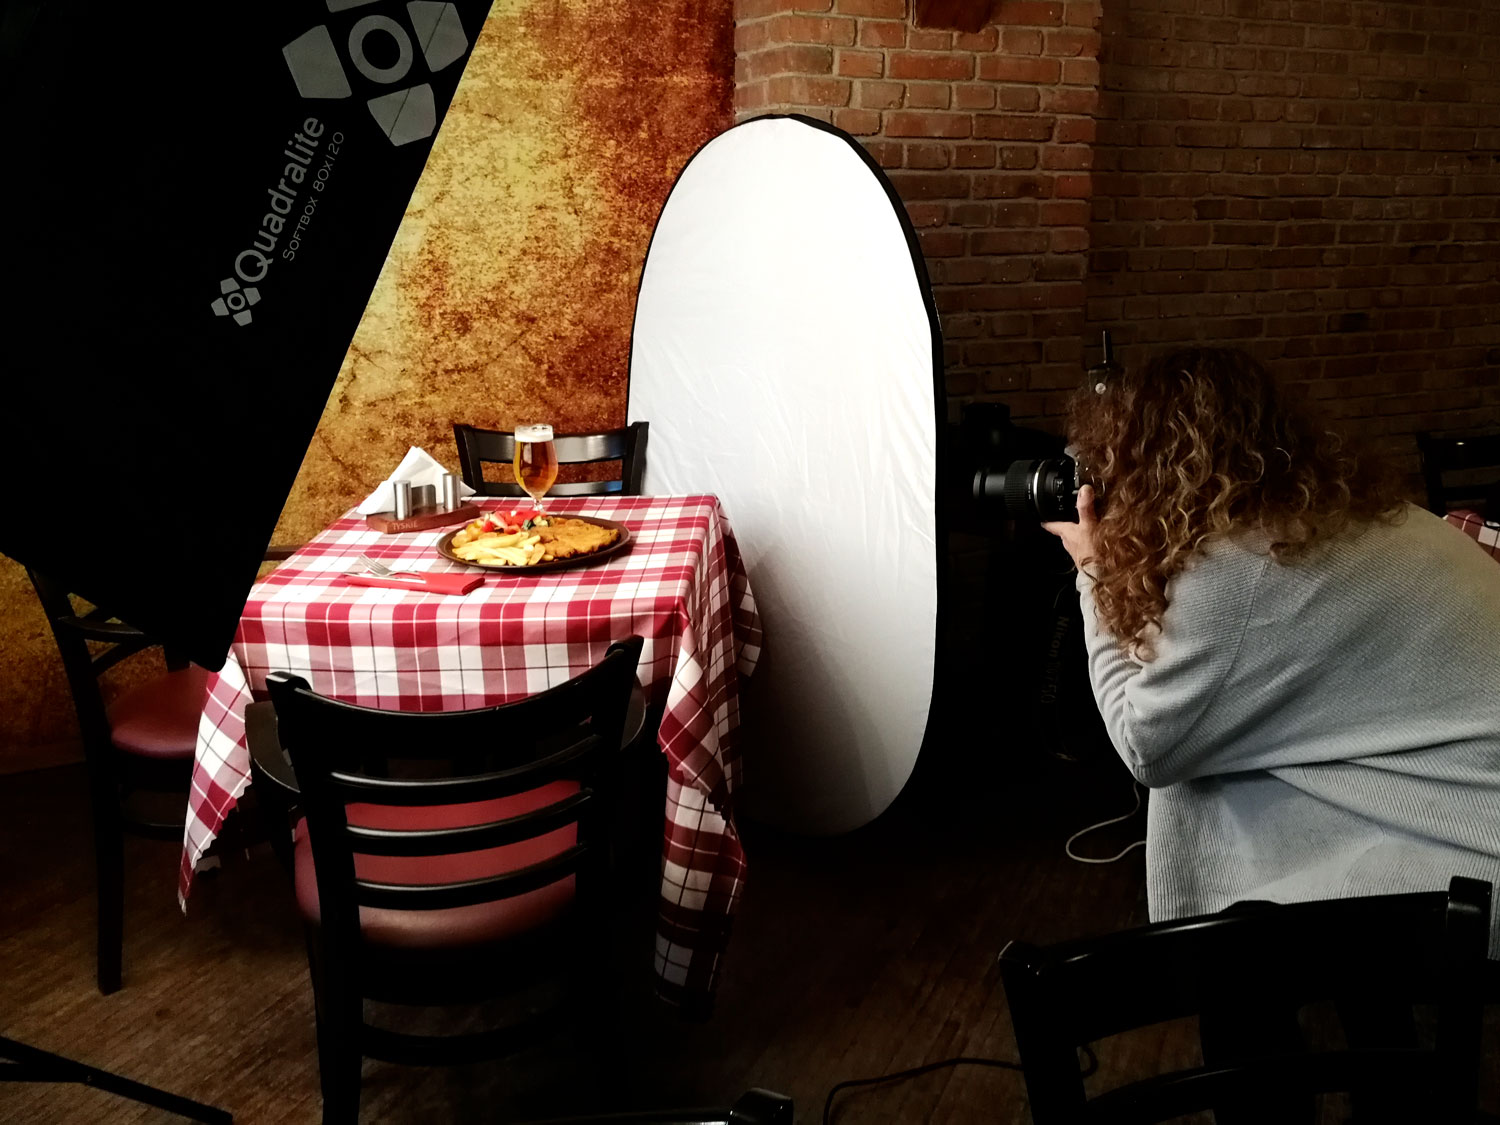 lettstudio_blog_ztf_food_photography_2.jpg